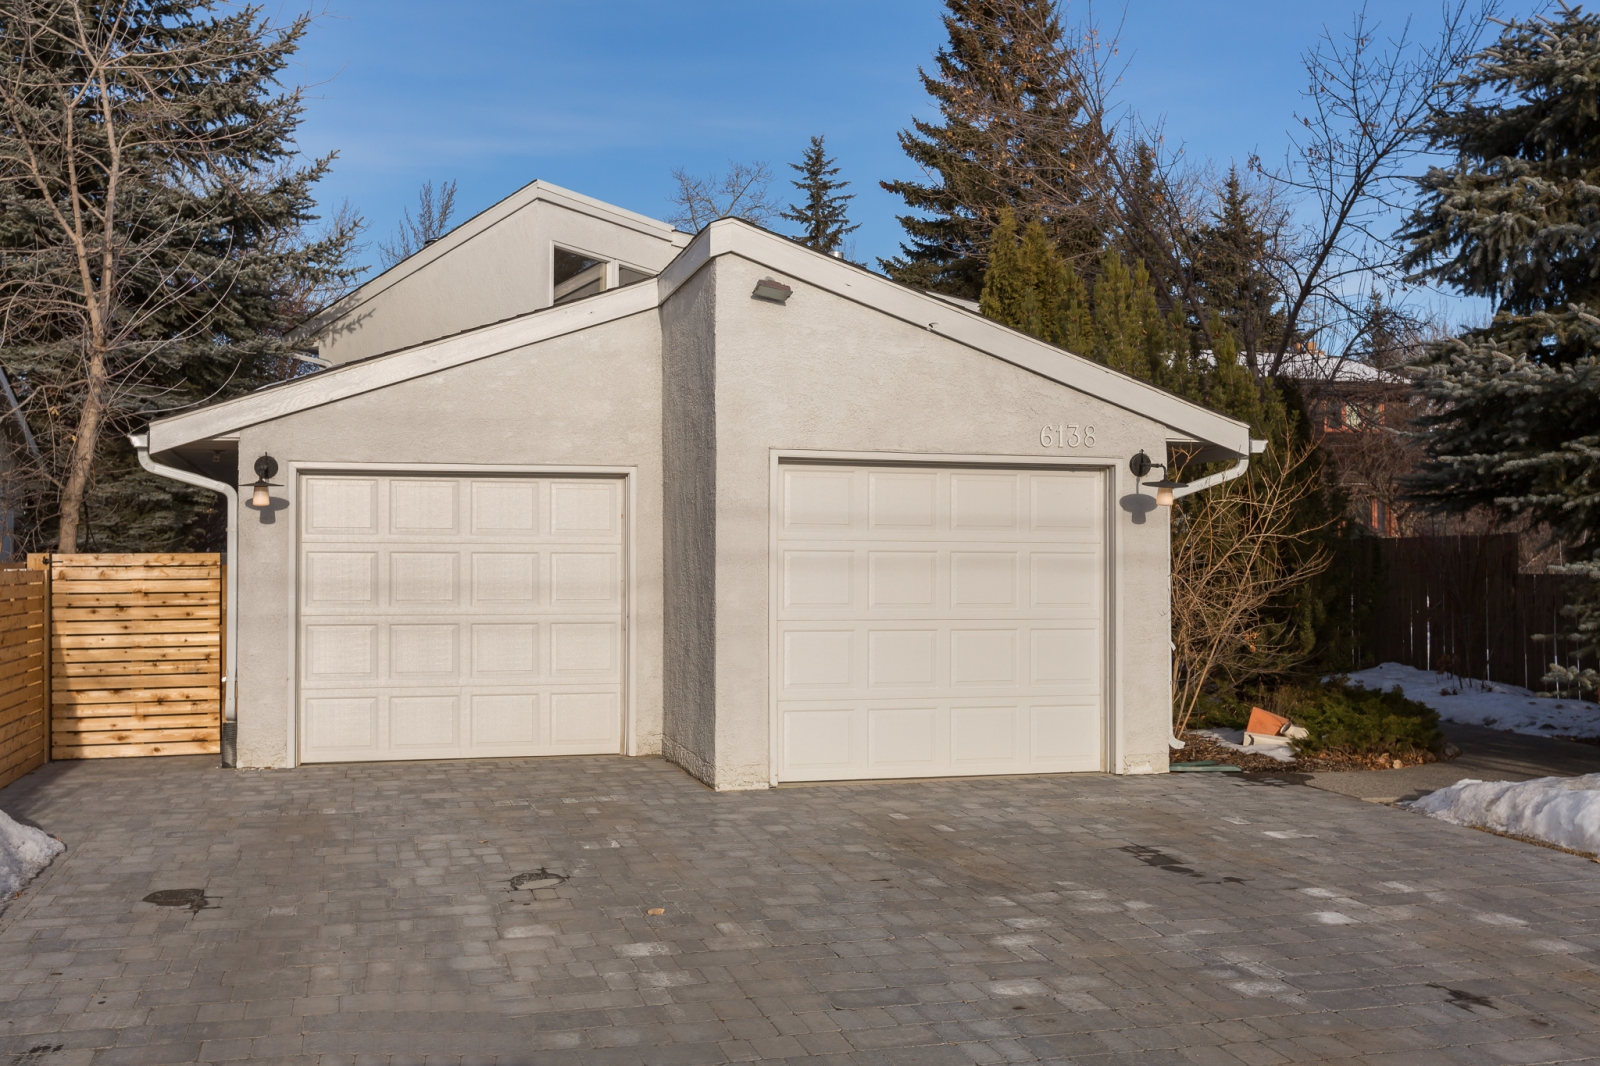 A double-car garage faces the street.